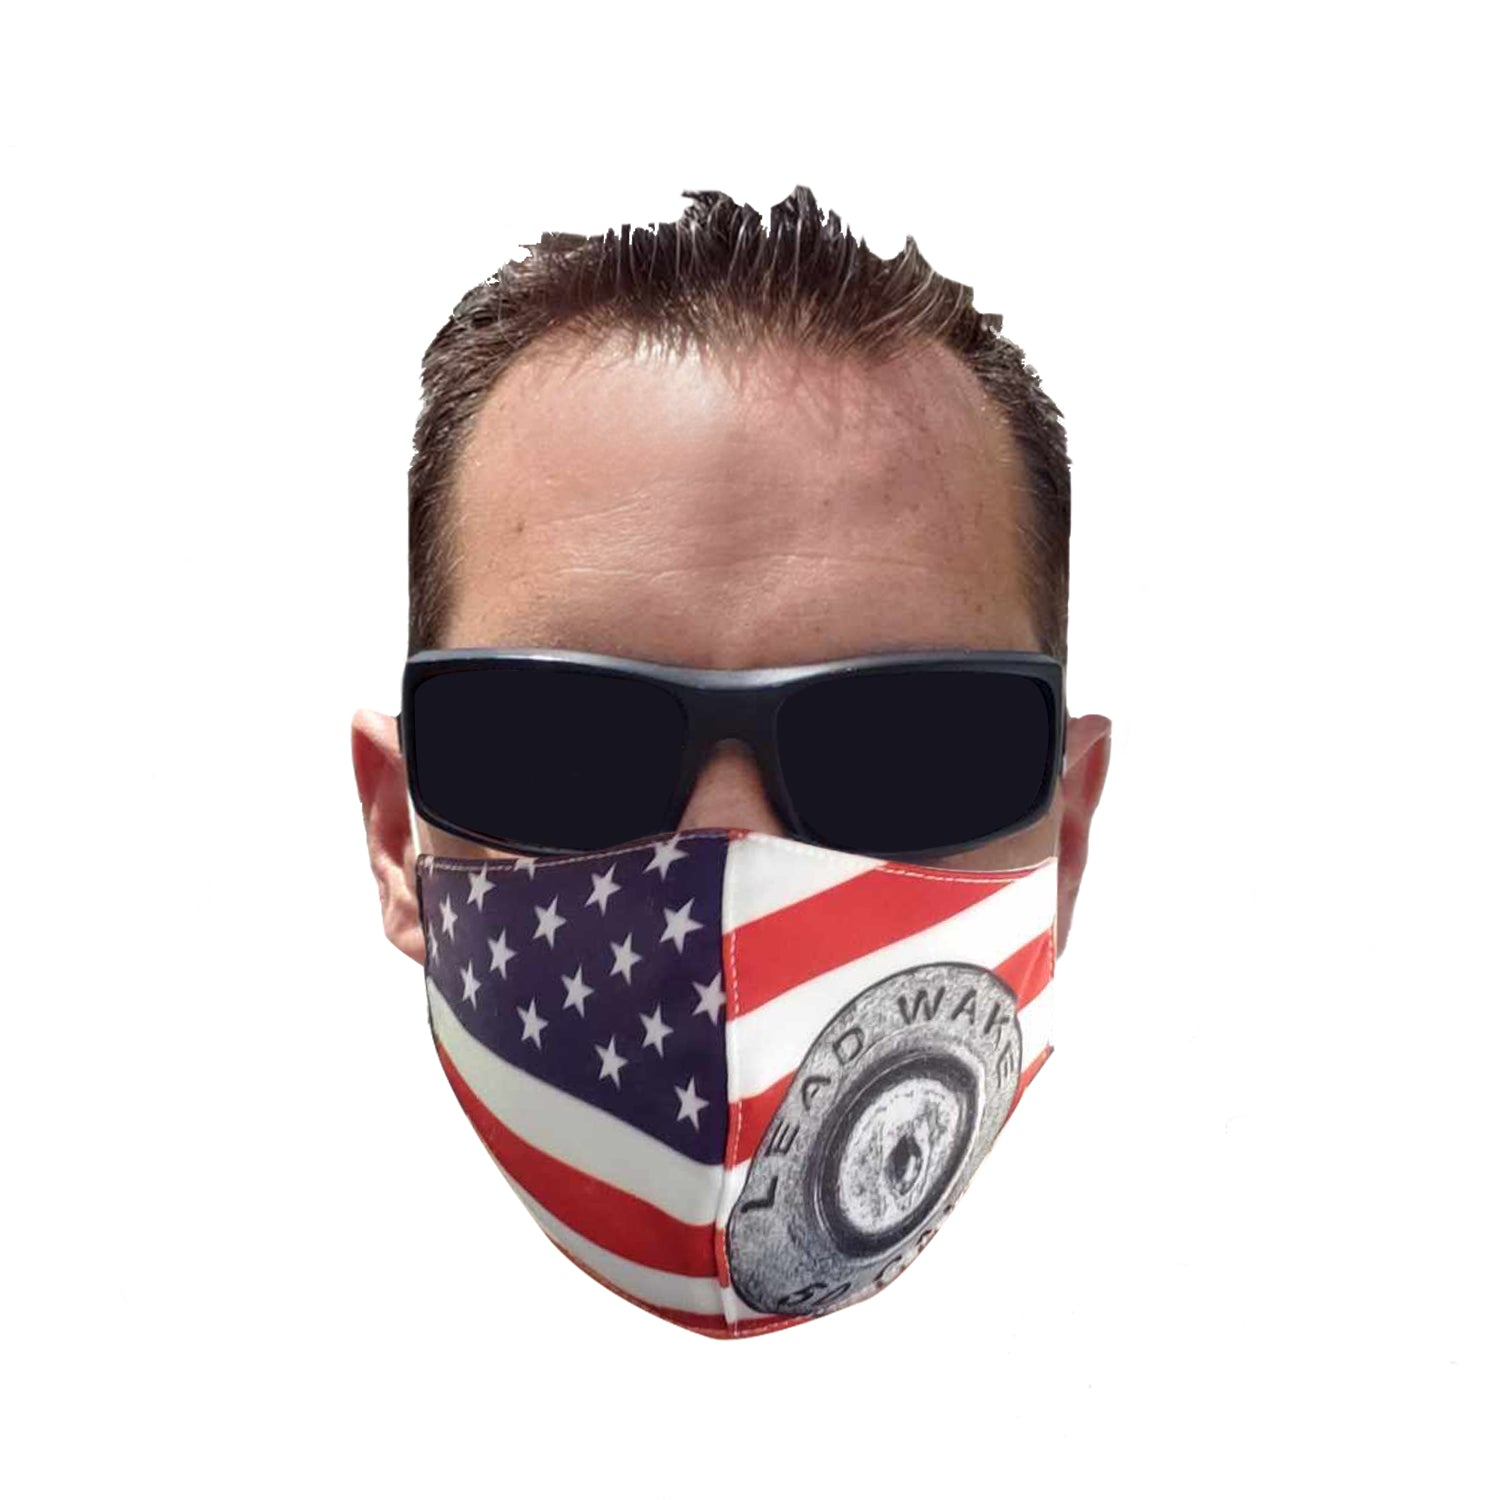 Lead Wake Red White Blue <br>Stars & Stripes Mask